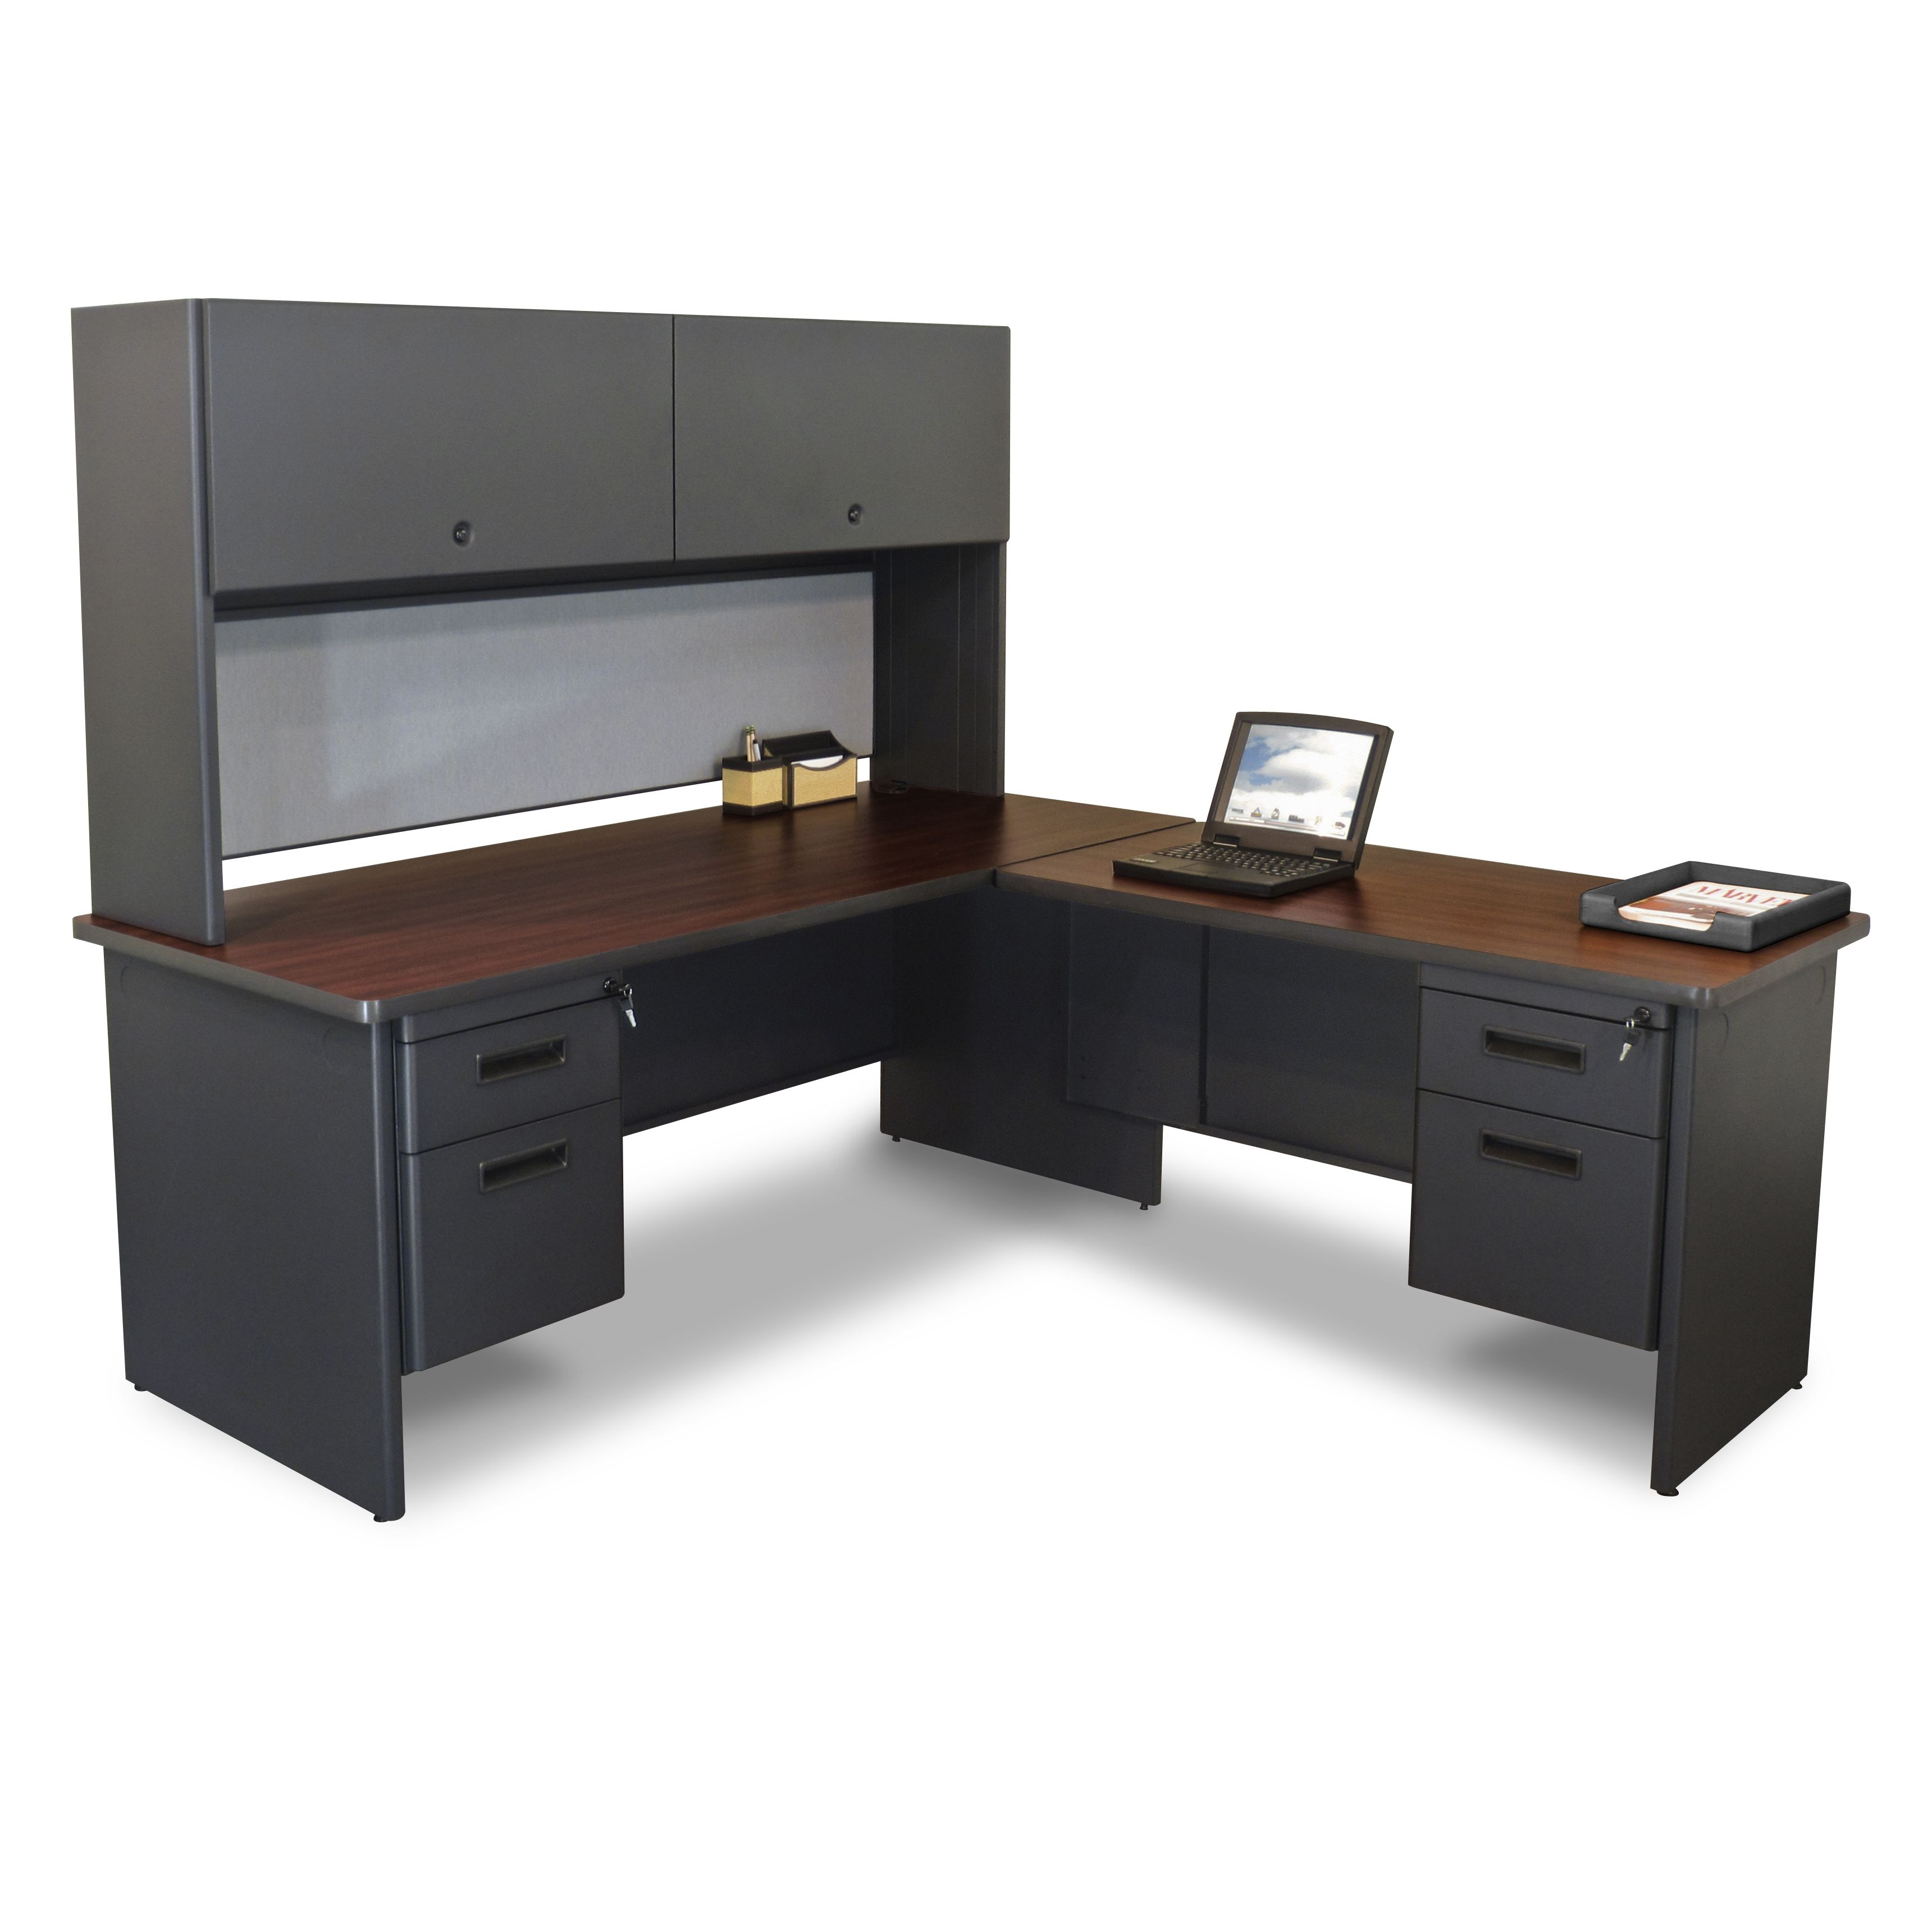 Large Black L Shaped Office Desk With Hutch Two Cabinets And Hanging  Drawers. Elegant Office Desks Designs With Smart Hutch Ideas. Custom Decor  Awesome Home ...